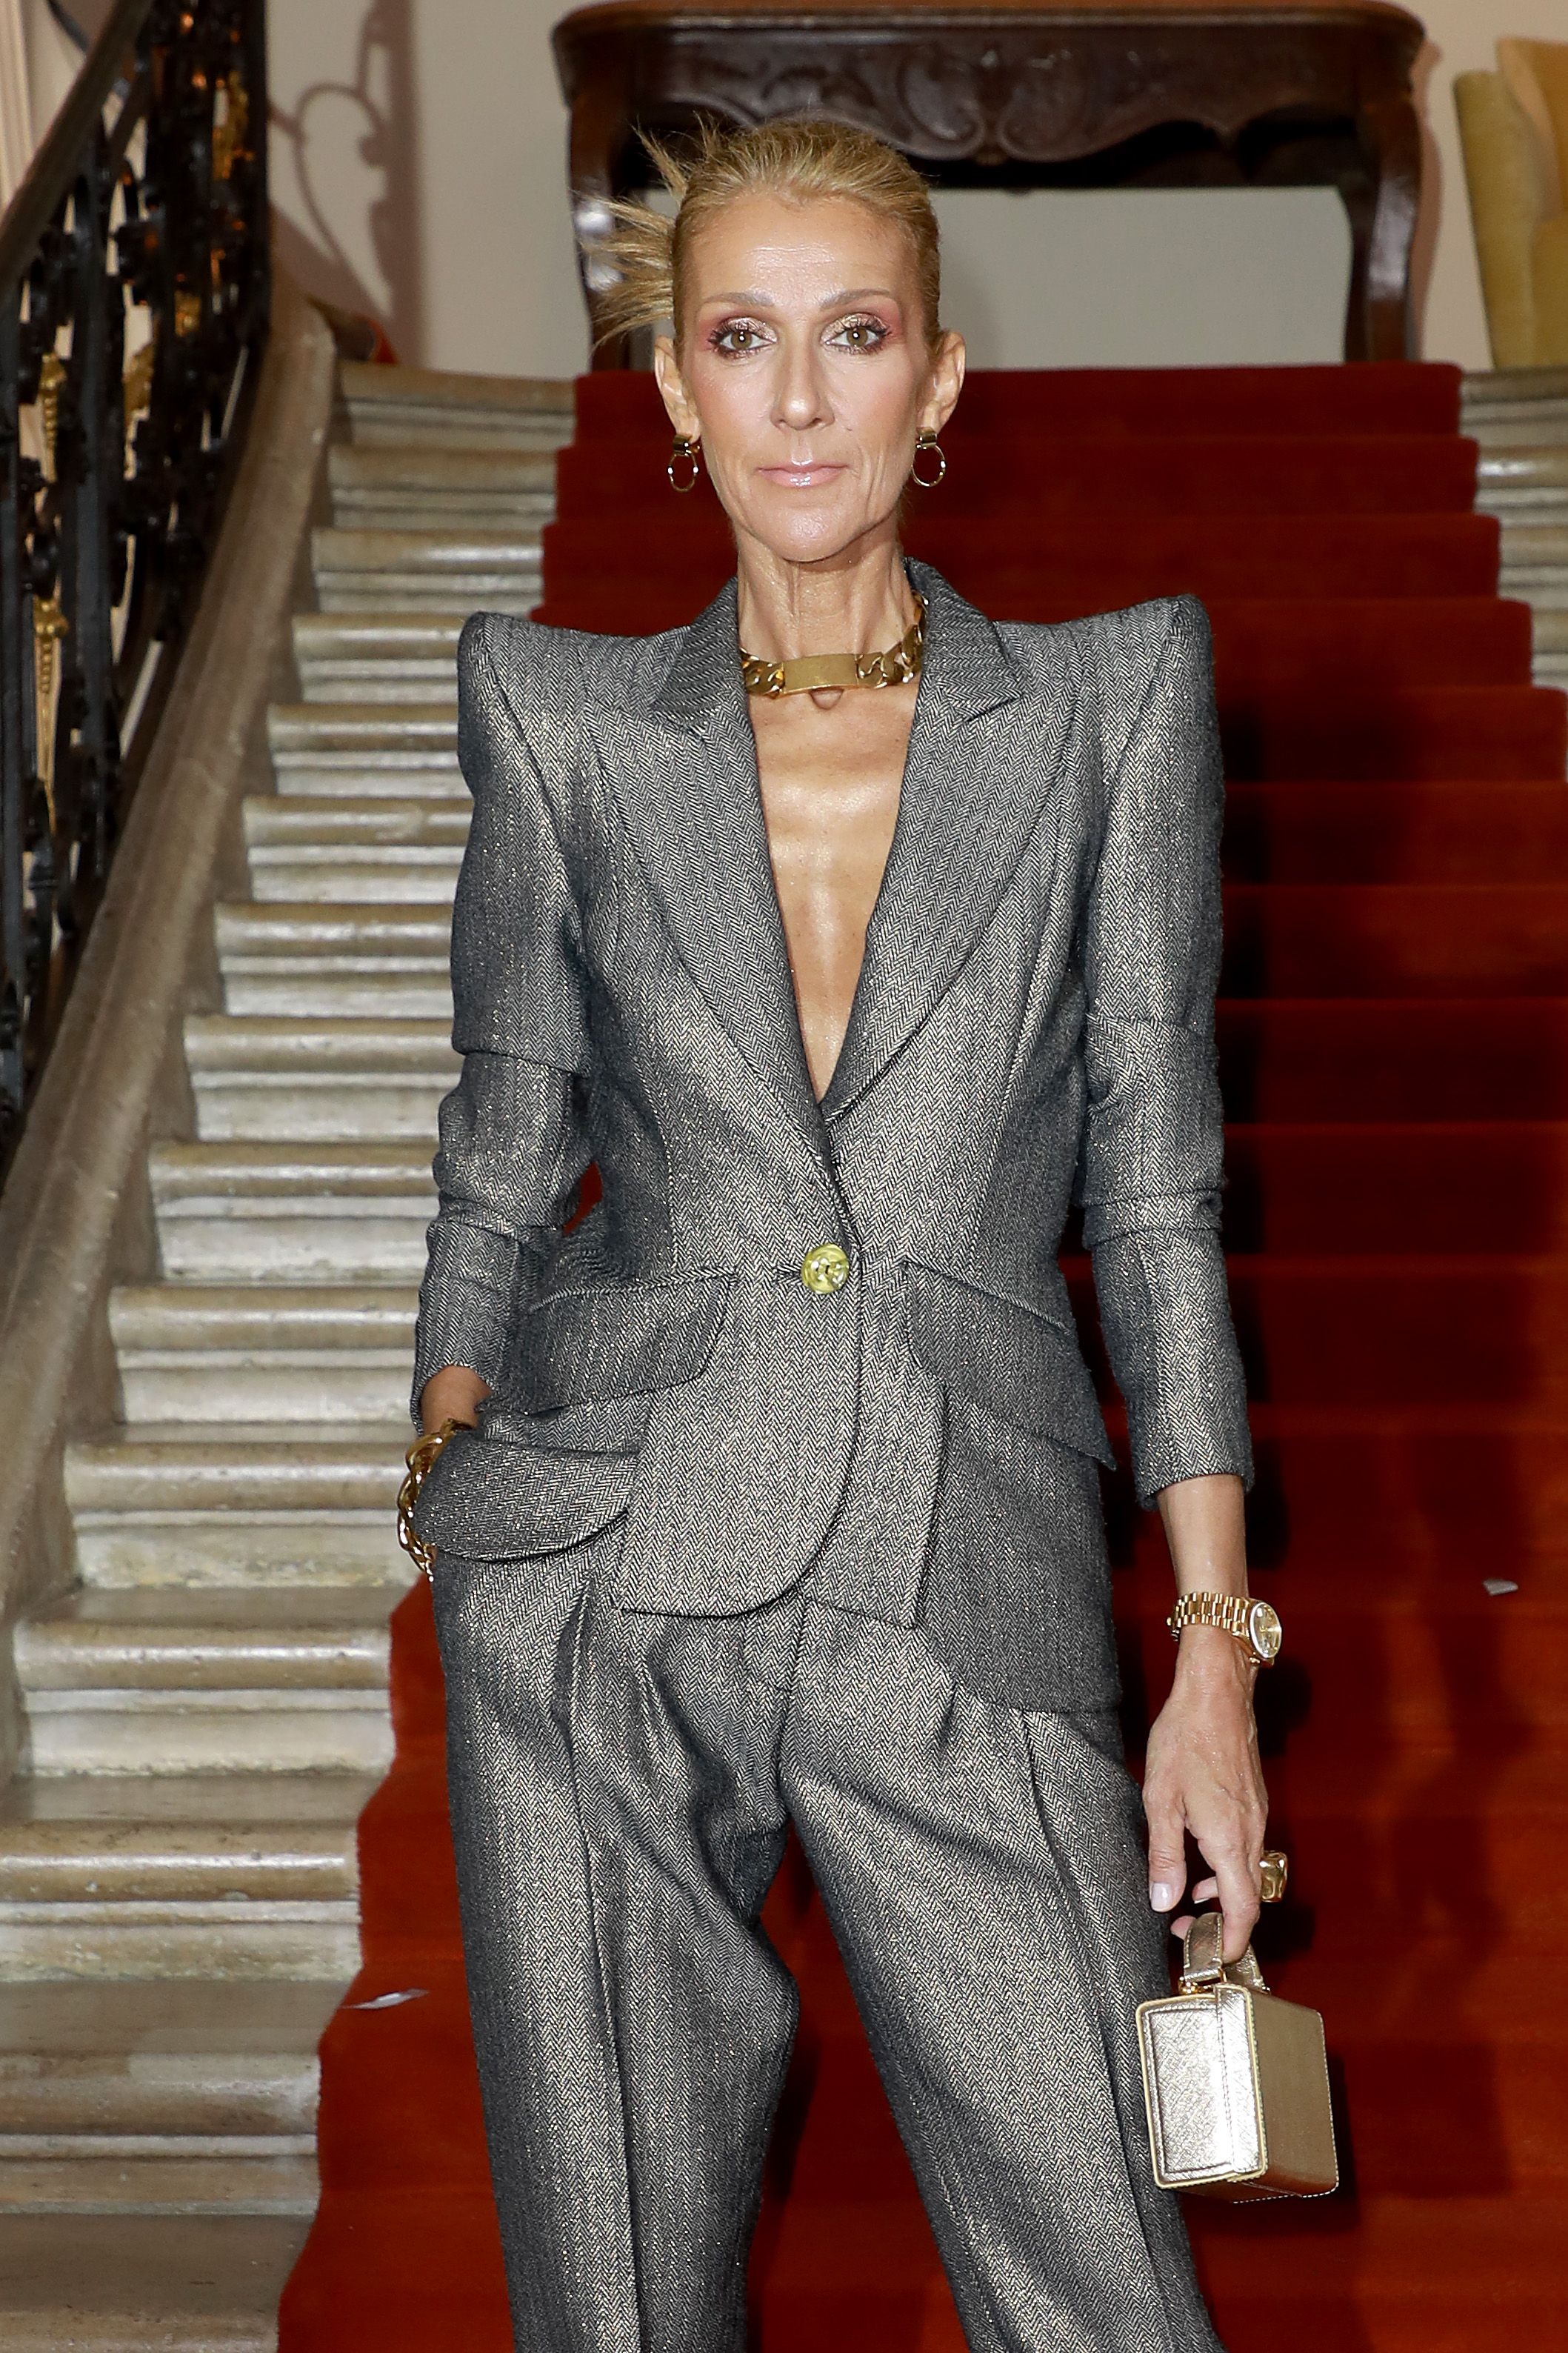 Celine Dion Rightfully Slammed Body Shamers Who Called Her Too Skinny